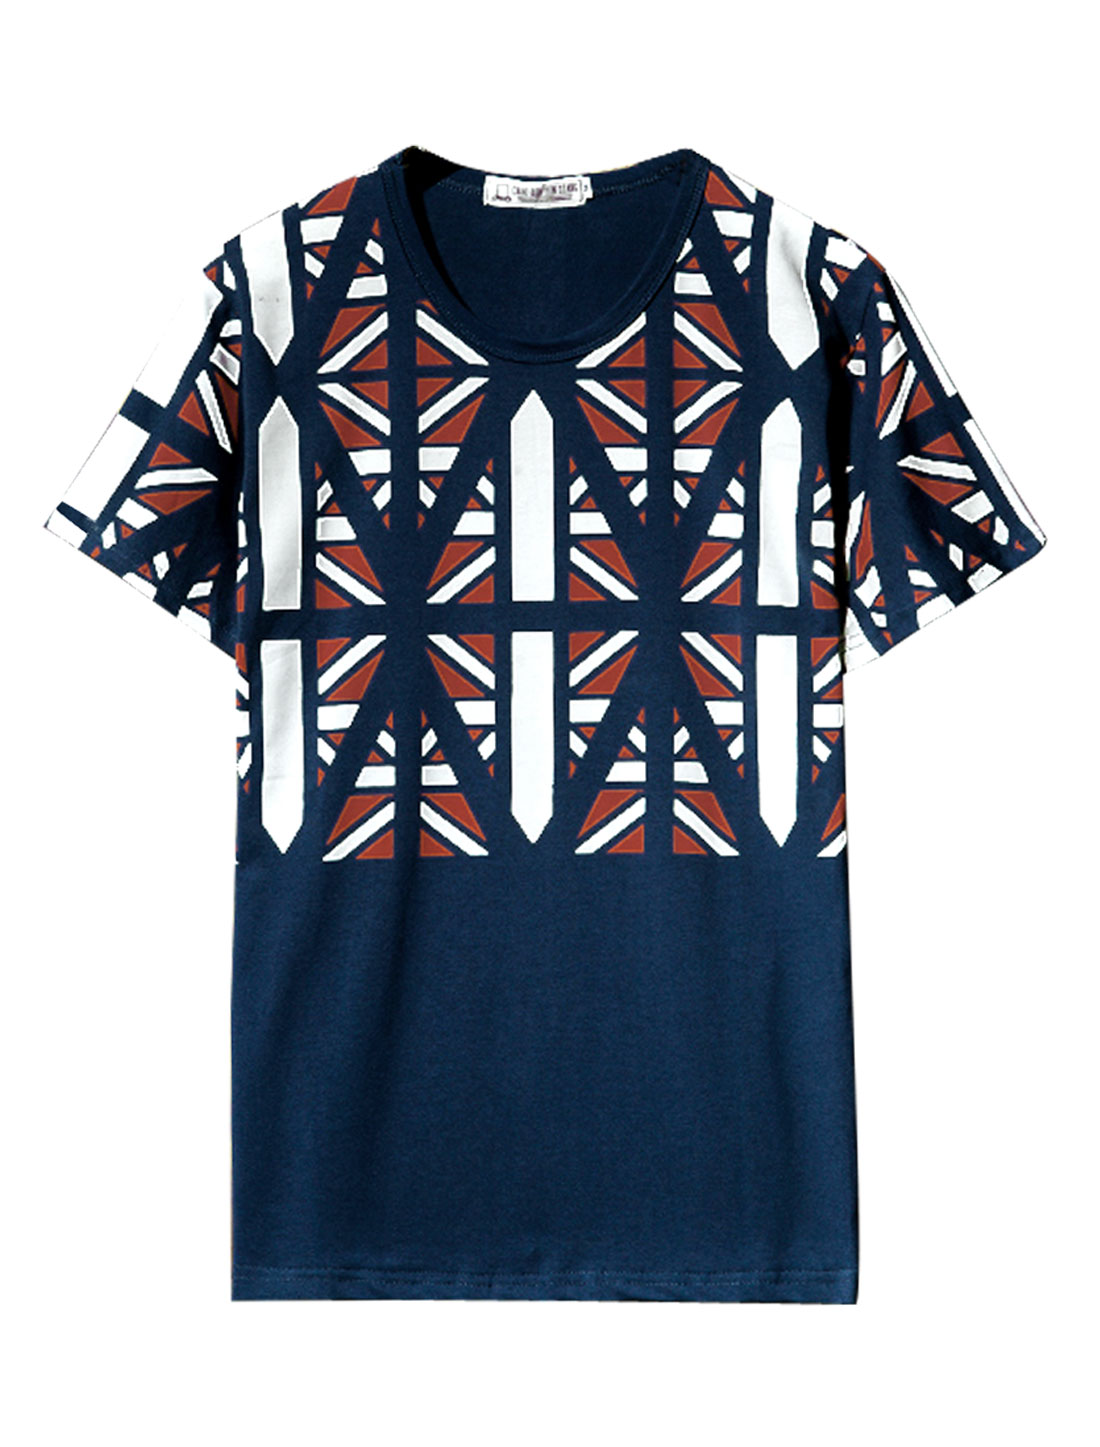 Men Round Neck Geometric Prints Fashion Tee Shirt Navy Blue M